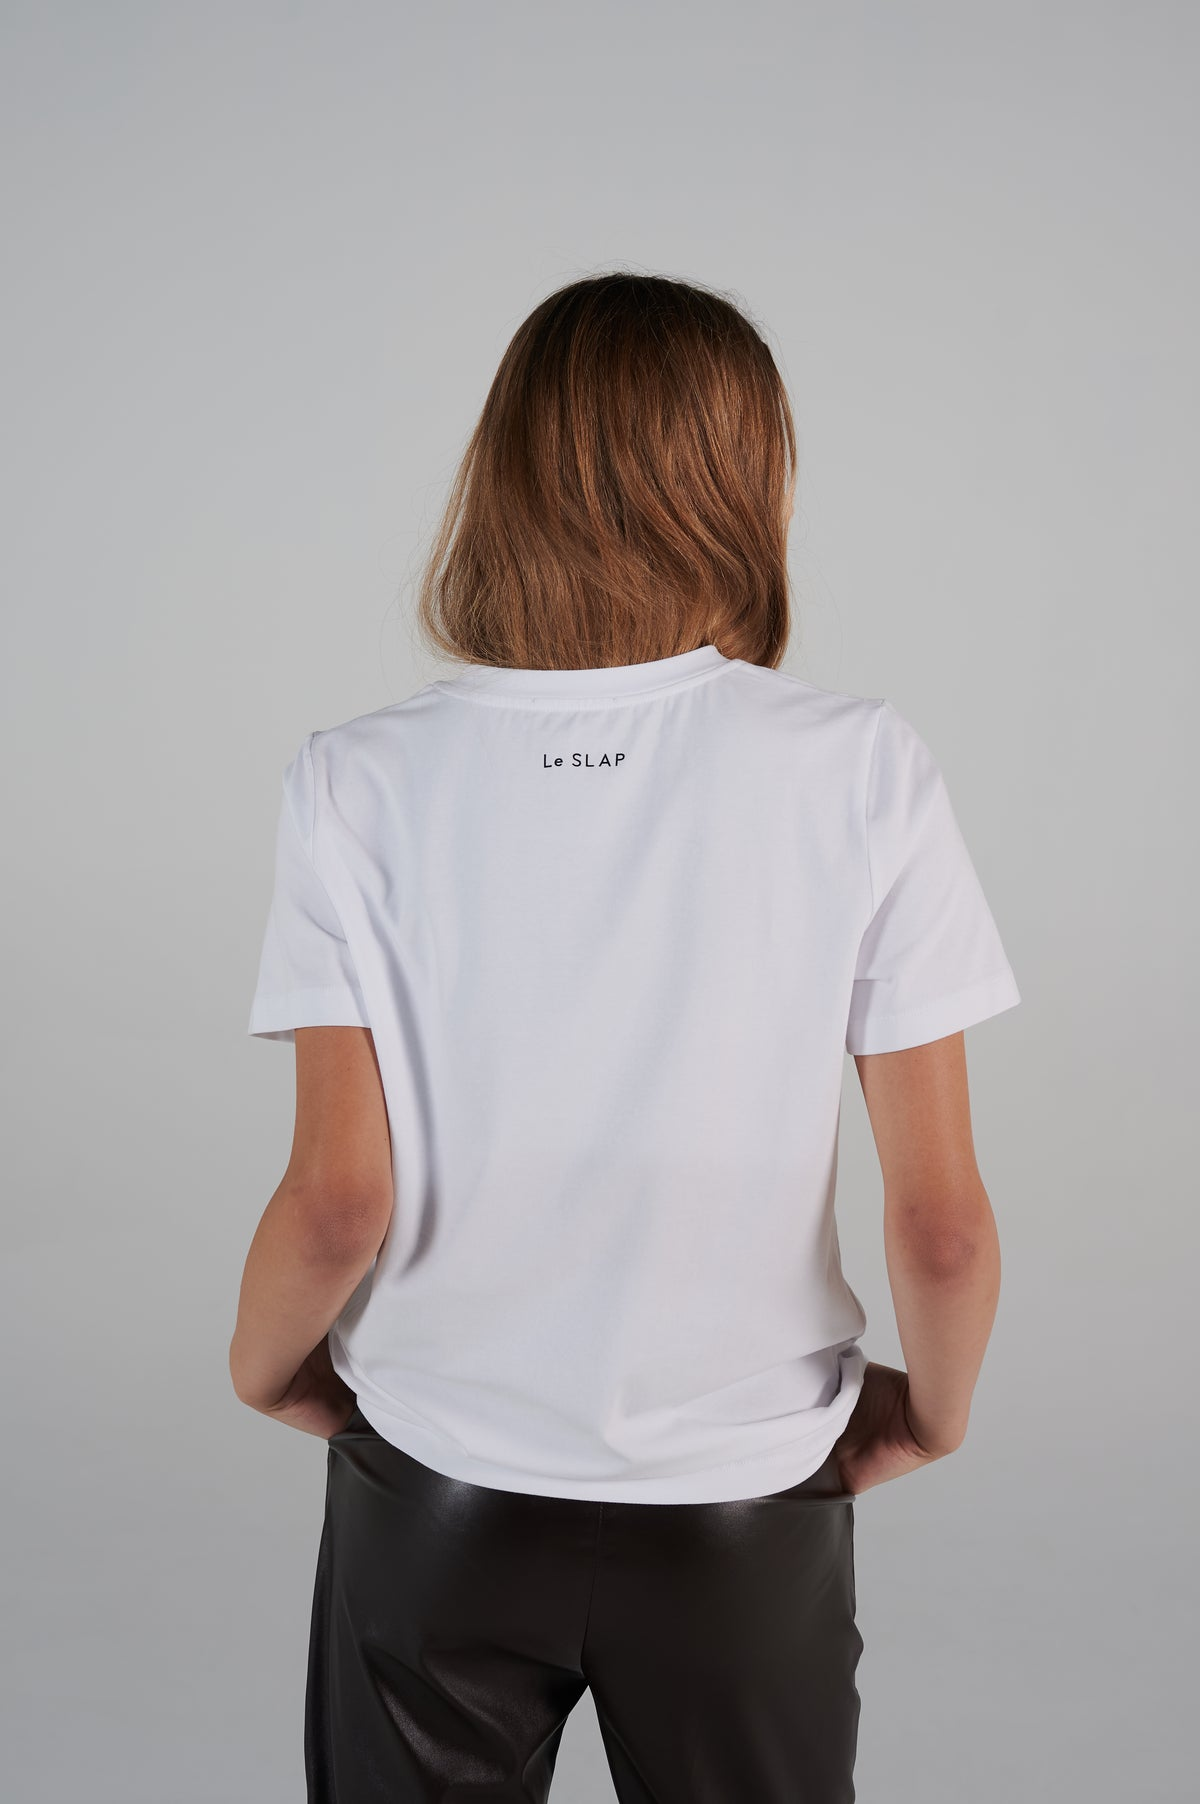 le-slap-details-white-slim-fit-logo-tshirt-lookbook-clothing-lifetime-line.jpg